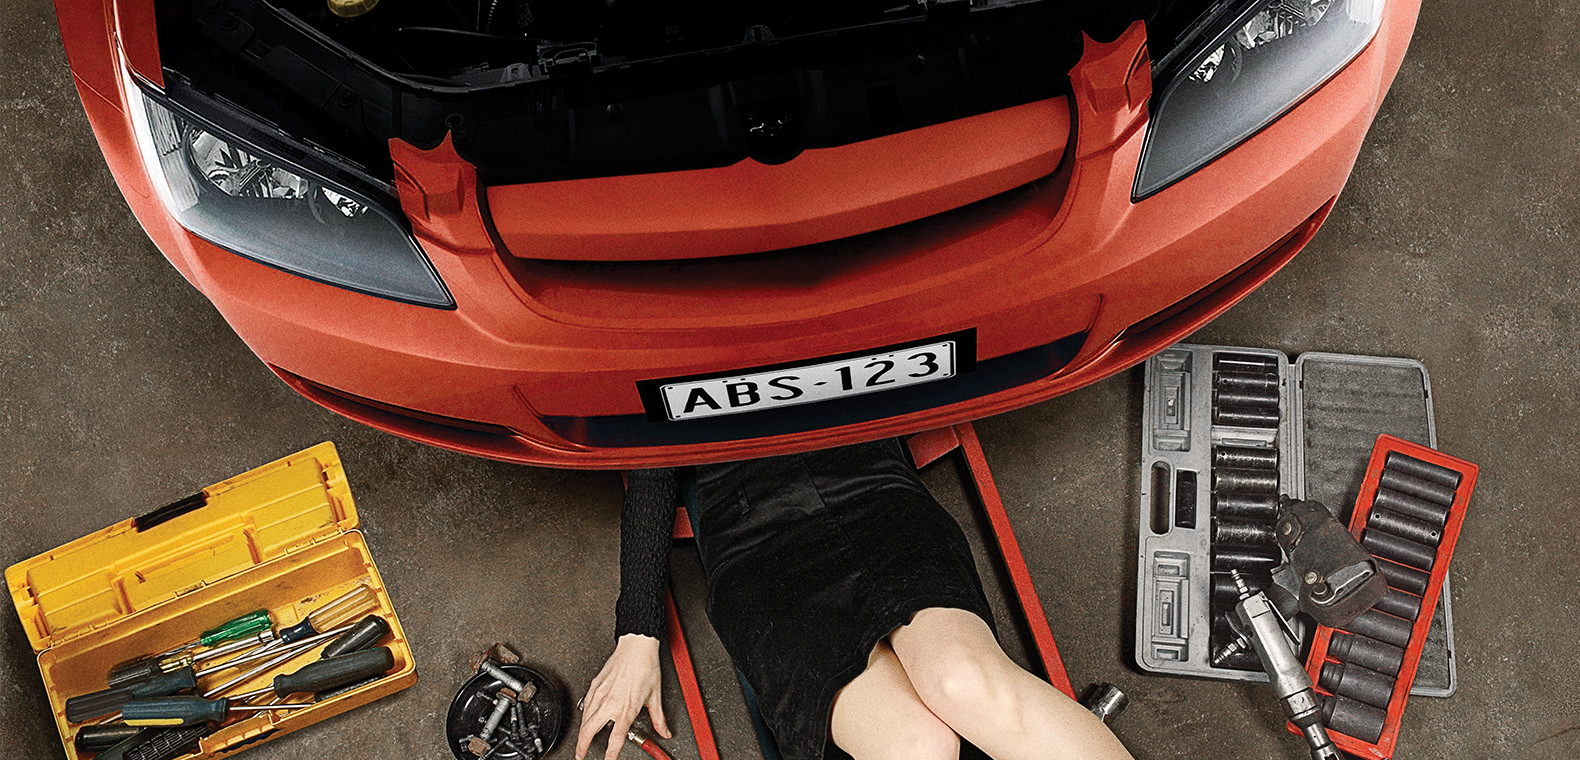 ABS Automotive - Corporate branding and implementation